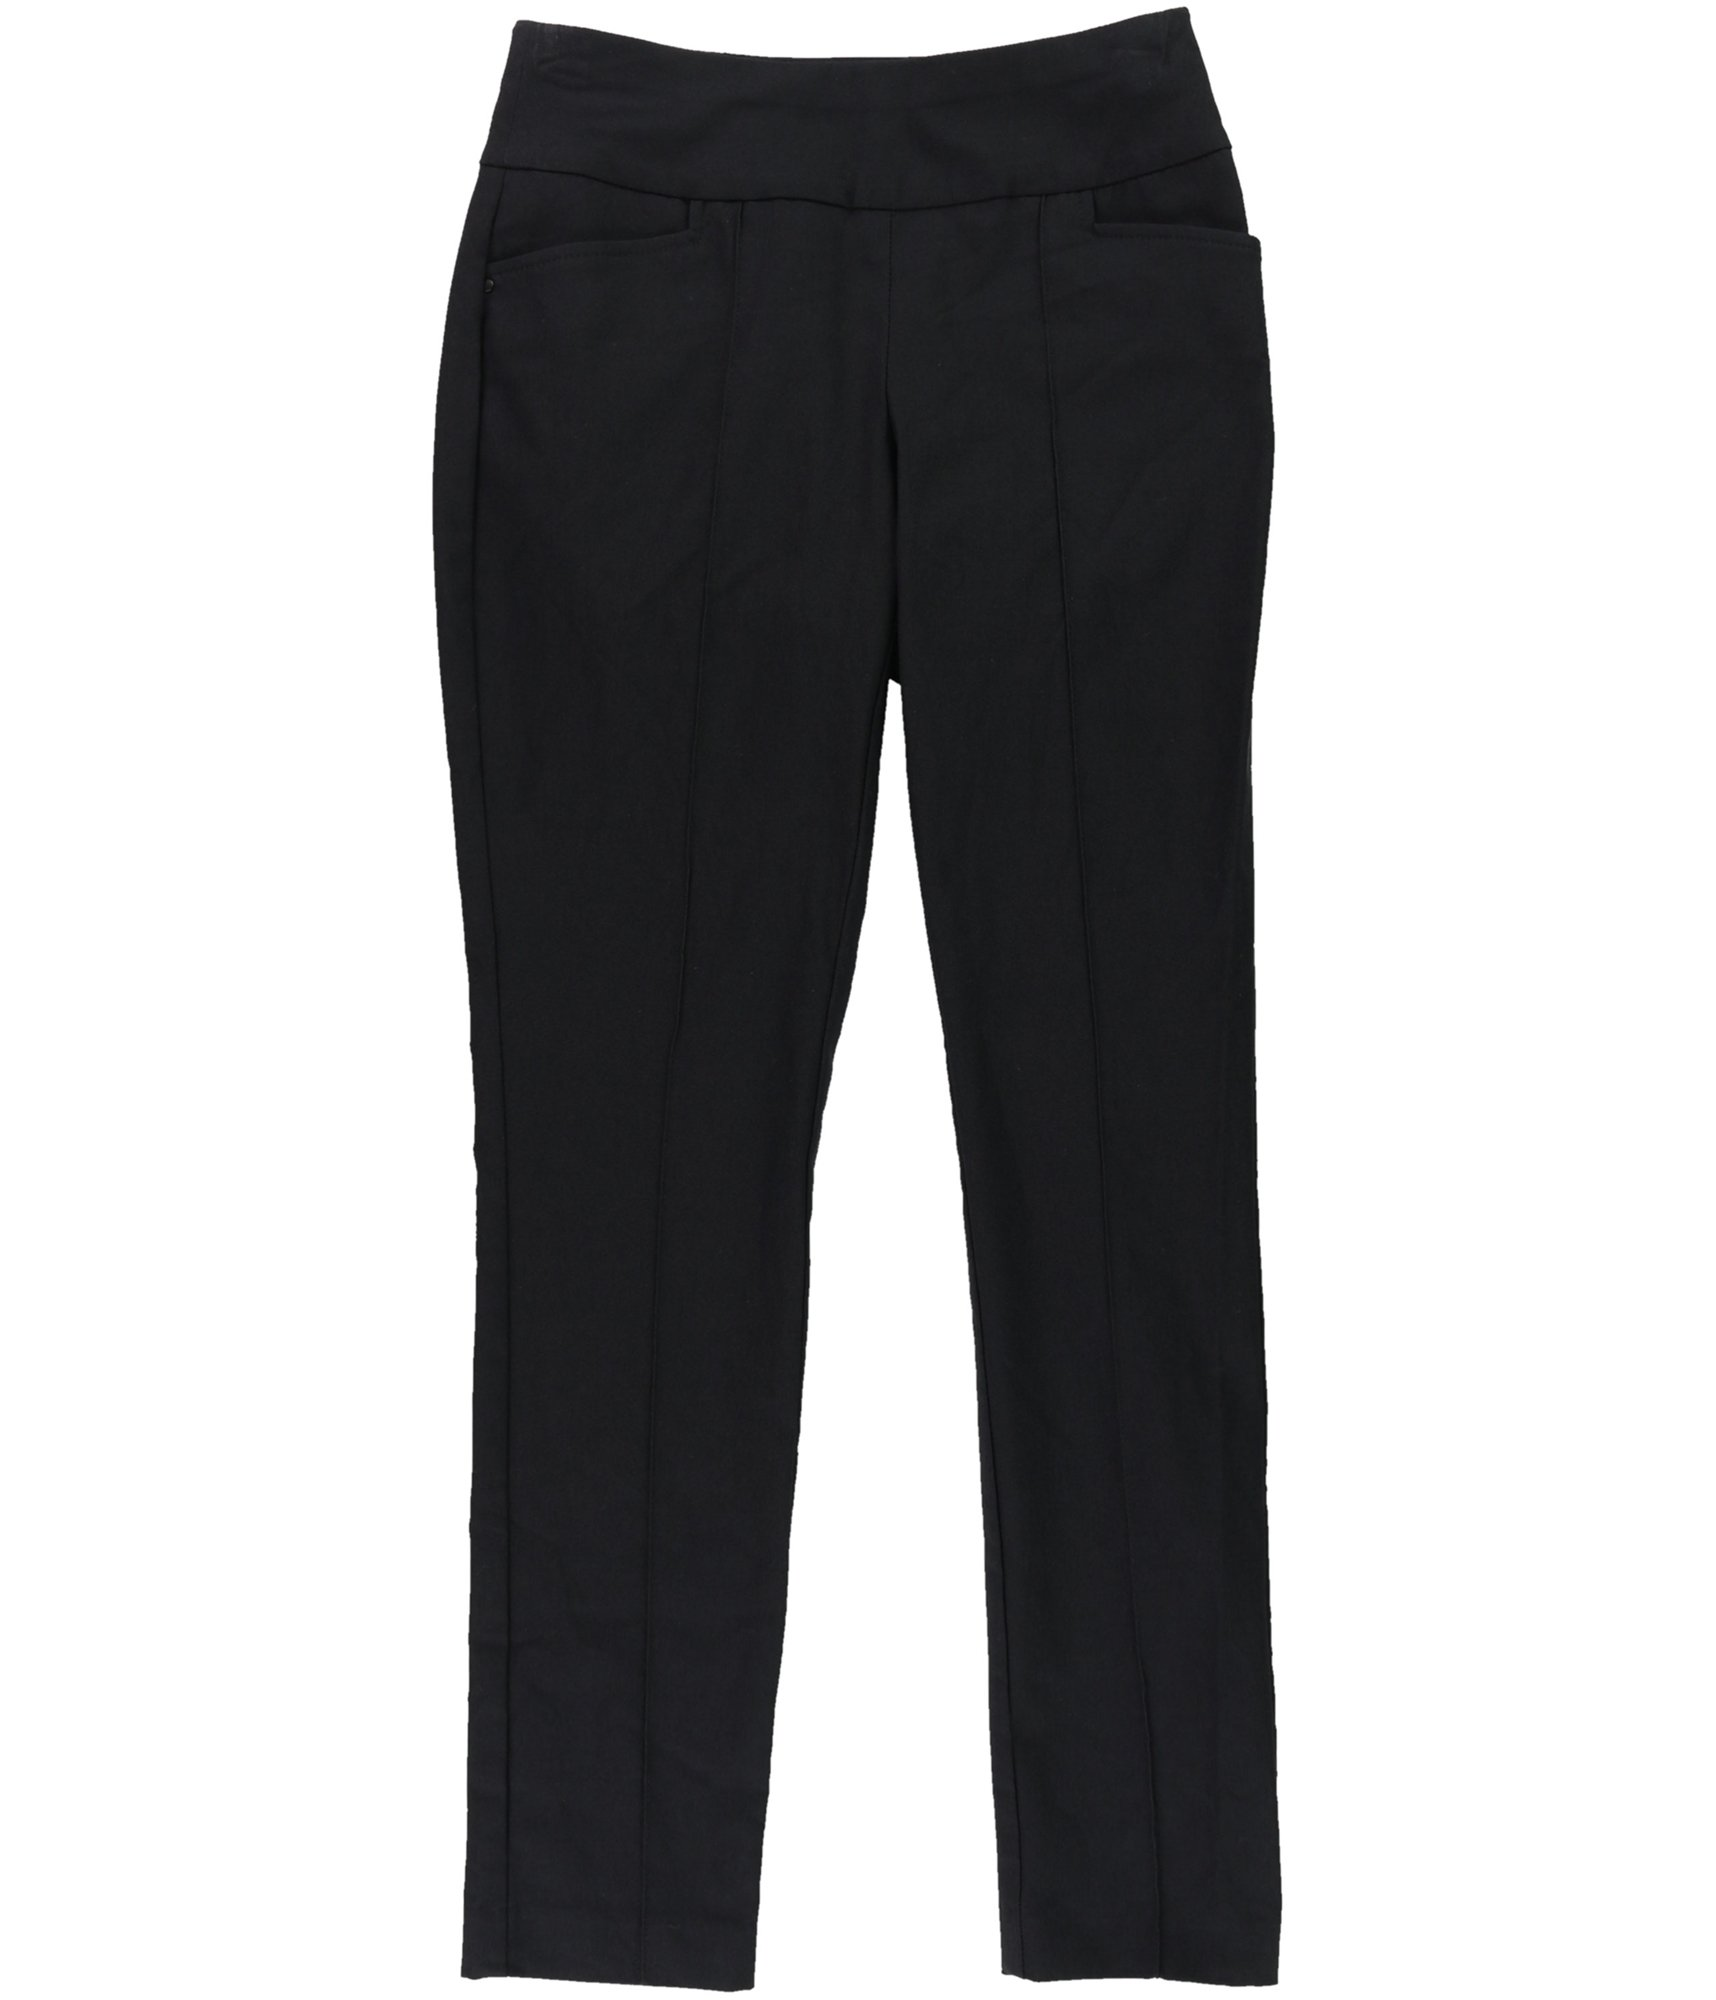 Style & Co. Womens Comfort Waist Casual Trousers Black PS/27 - Petite